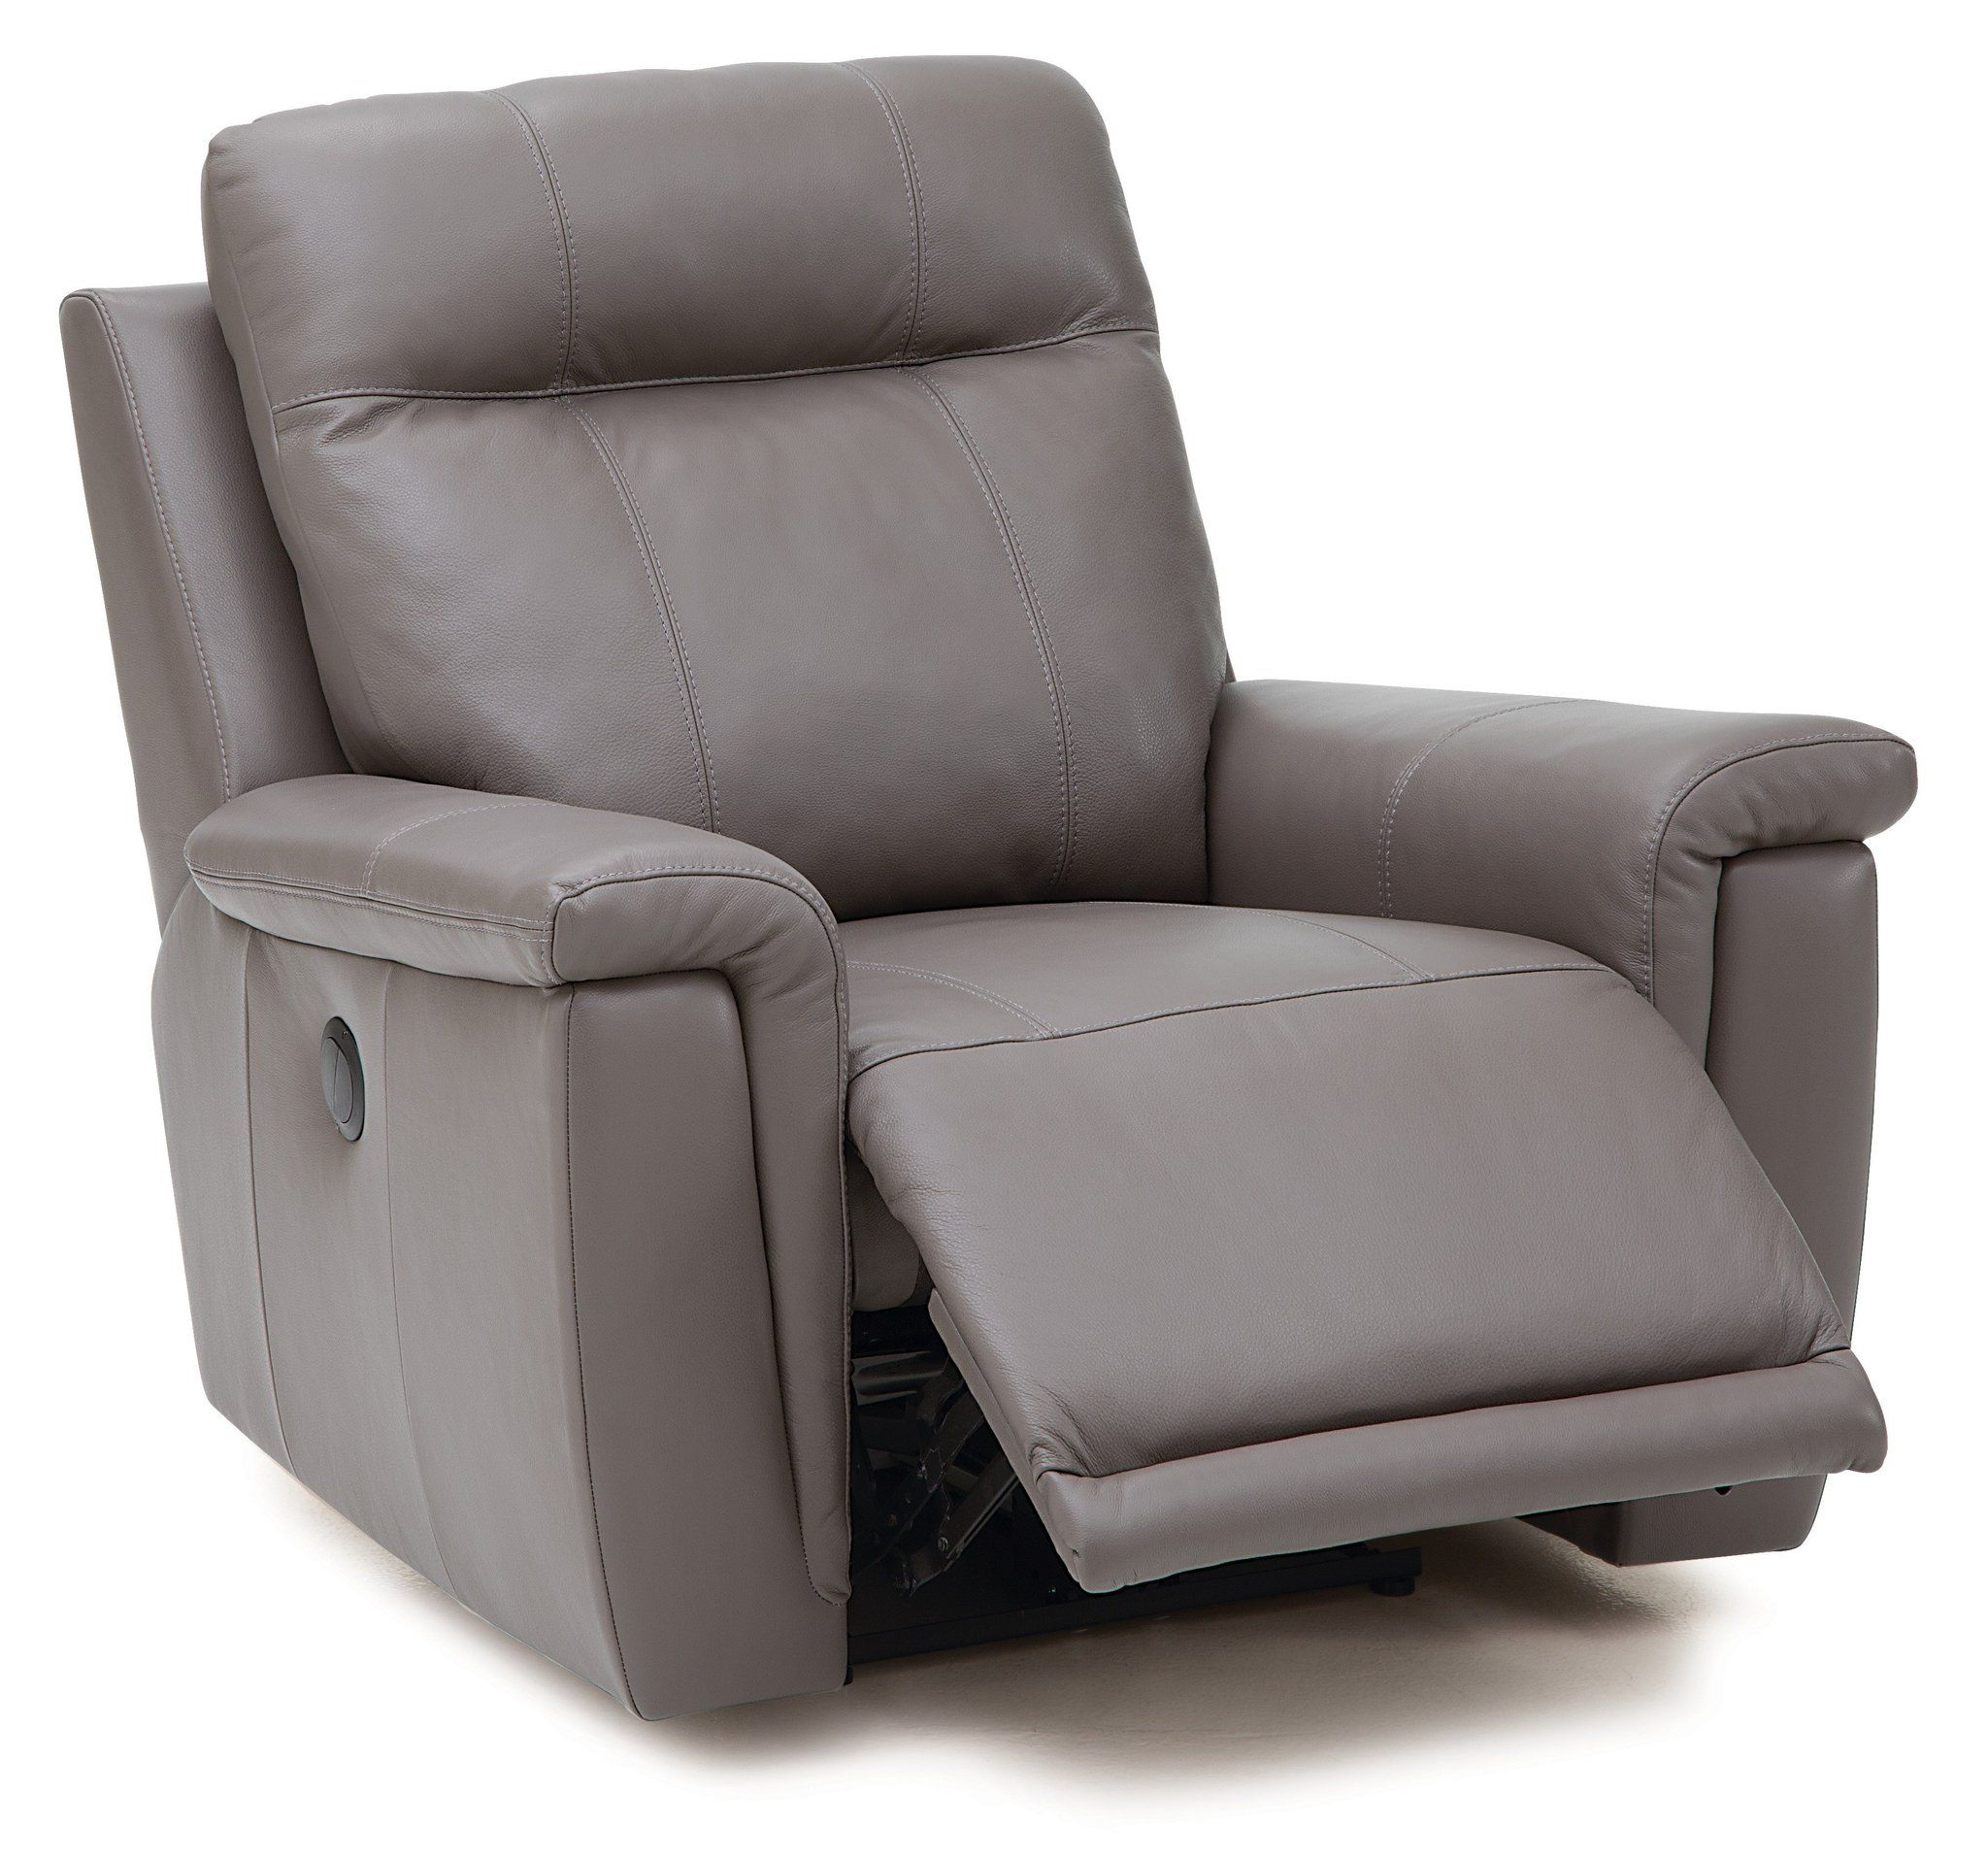 Westpoint Recliner The Westpoint Collection Offers Classic Comfort And Structured Silhouette With Extra Wide Palliser Furniture Furniture Mattress Furniture